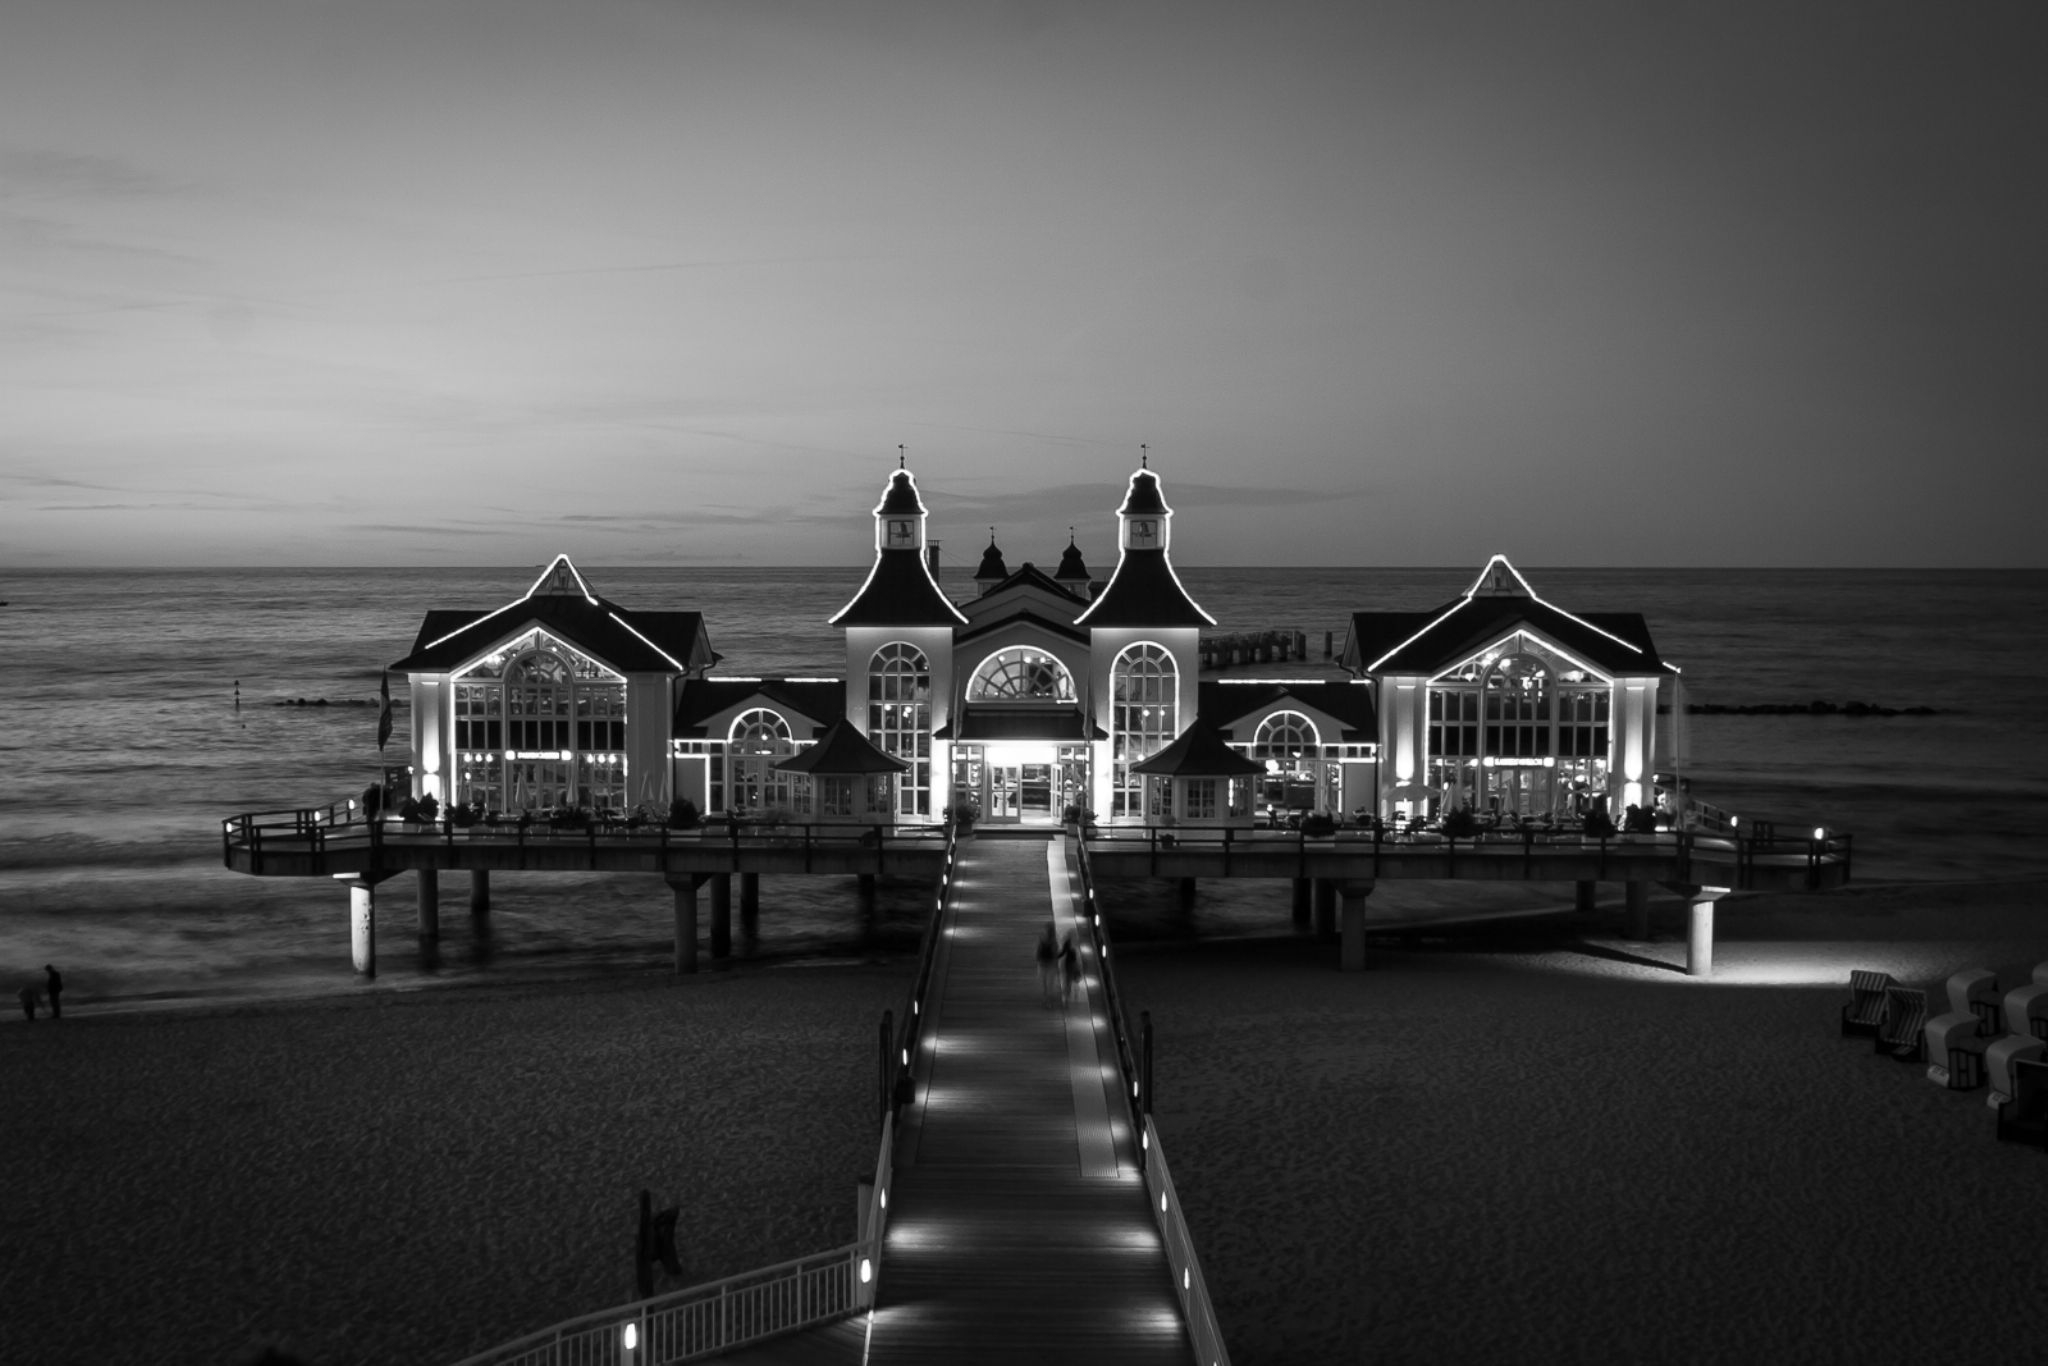 ... seabridge by foocon